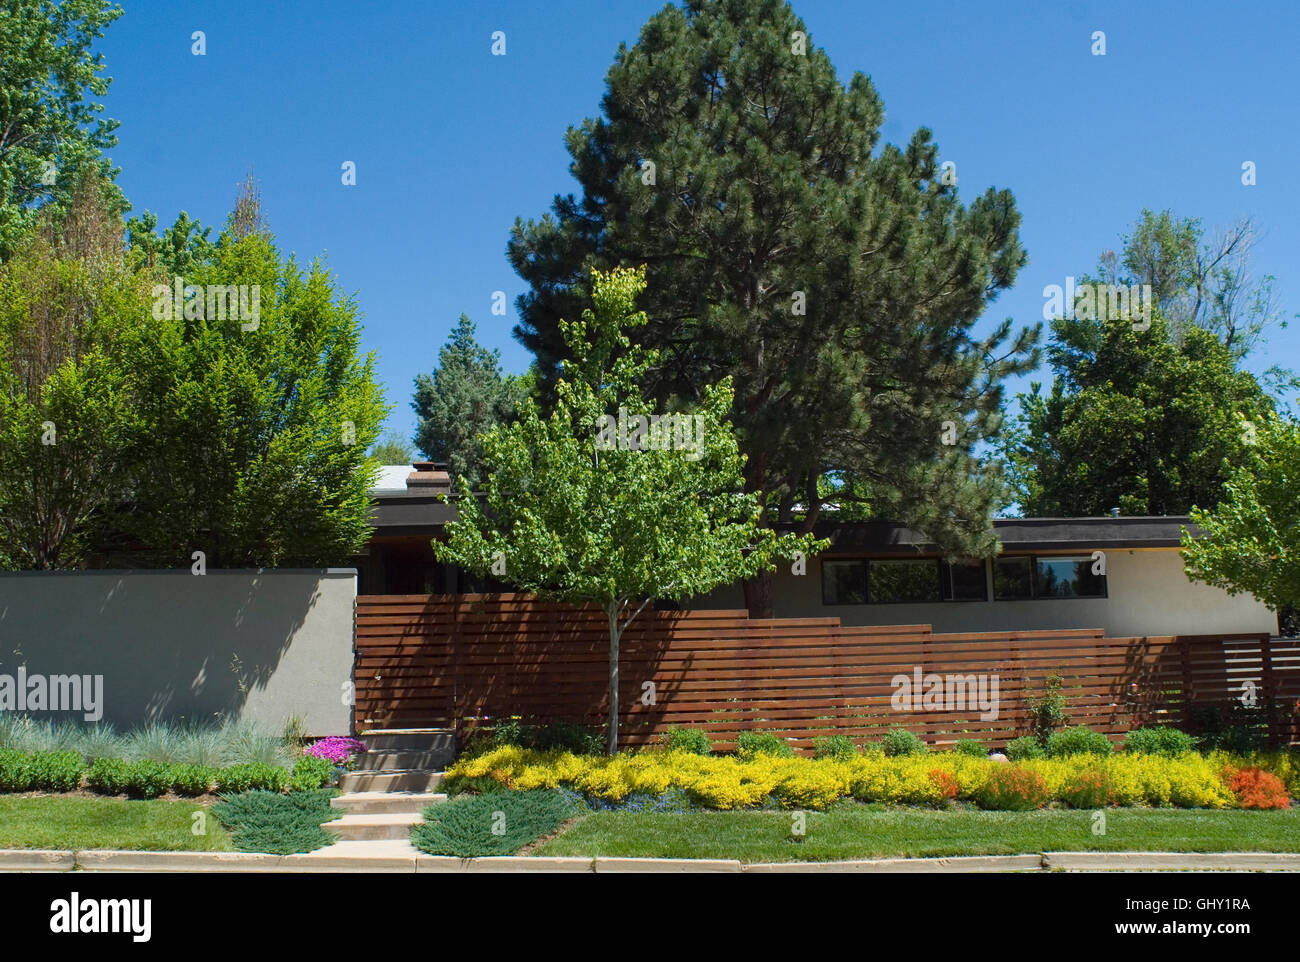 Boulder garden, at Mid-Century Modern home in the Newlands neighborhood of Boulder, CO - Stock Image